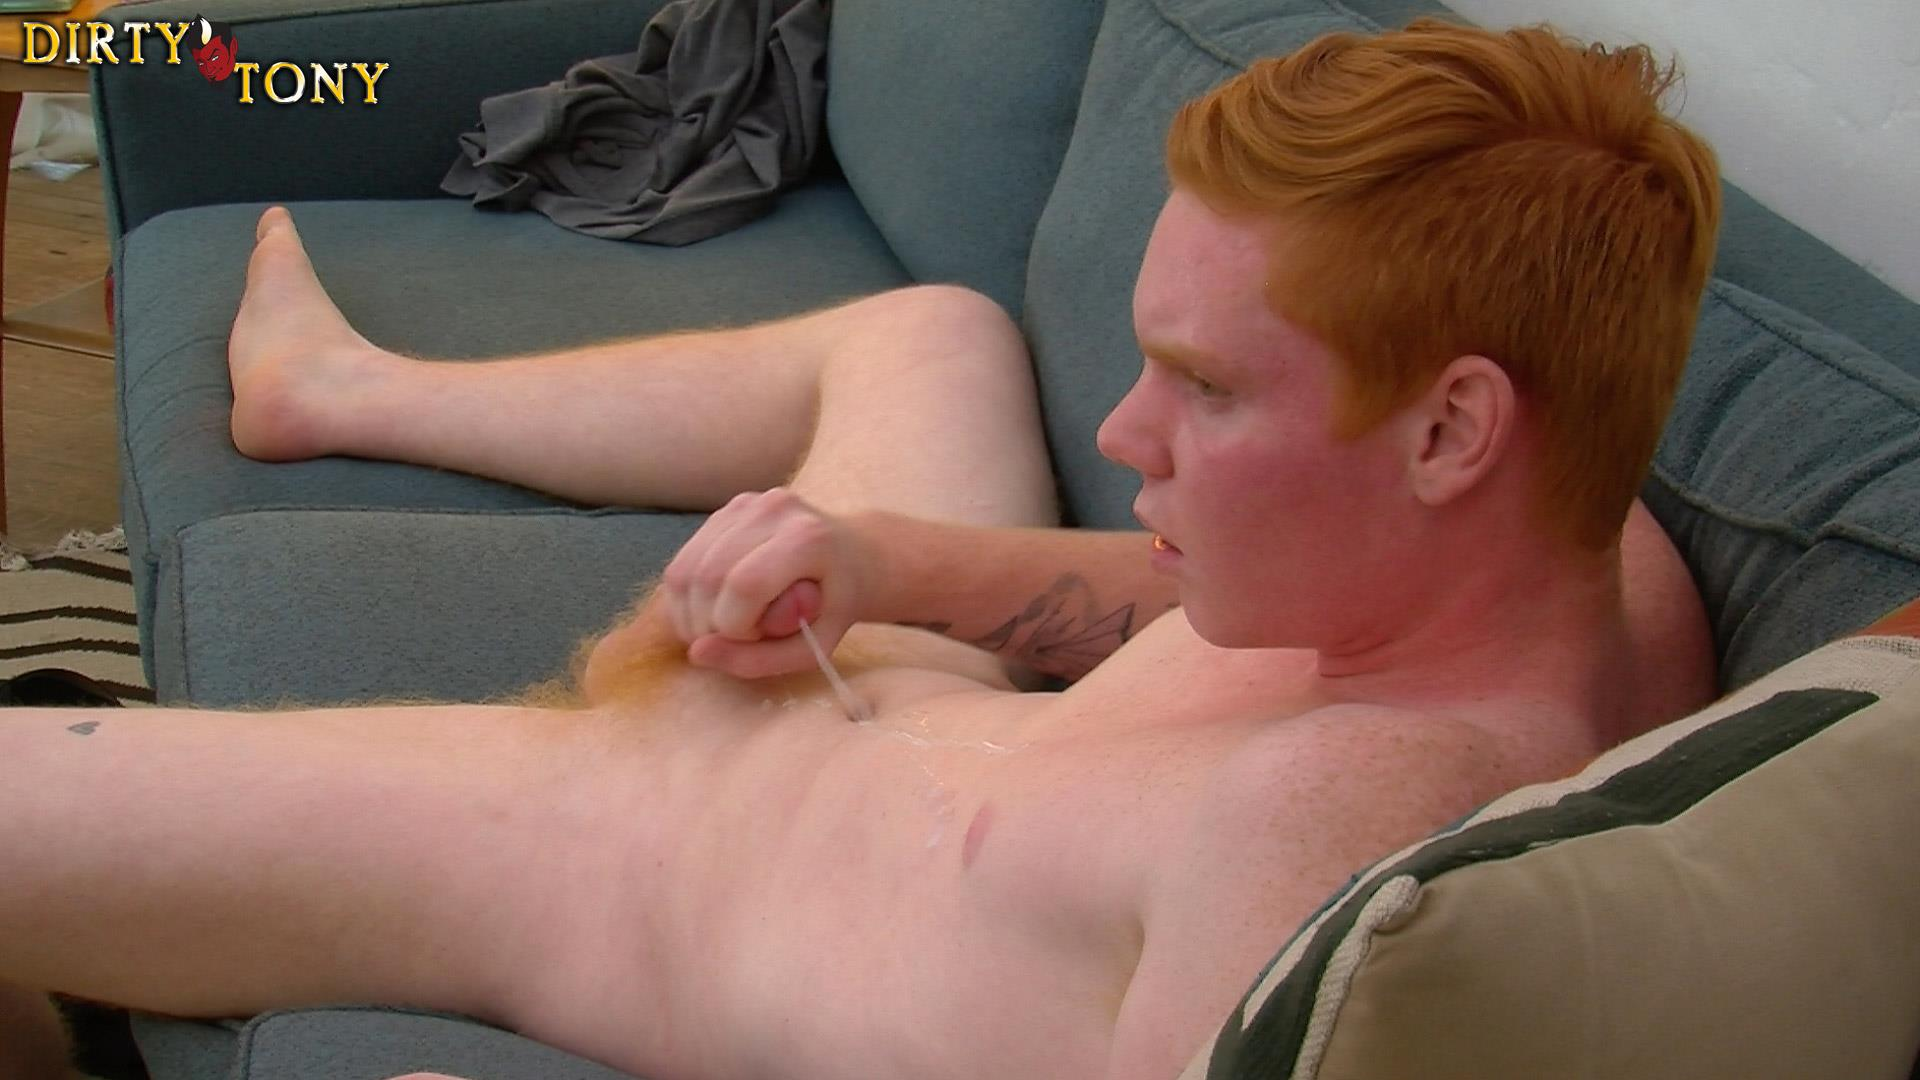 Dirty-Tony-Max-Breeker-Redheaded-Twink-Masturbation-Amateur-Gay-Porn-14 Bisexual 19 Year Old Redheaded Twink Auditions For Gay Porn